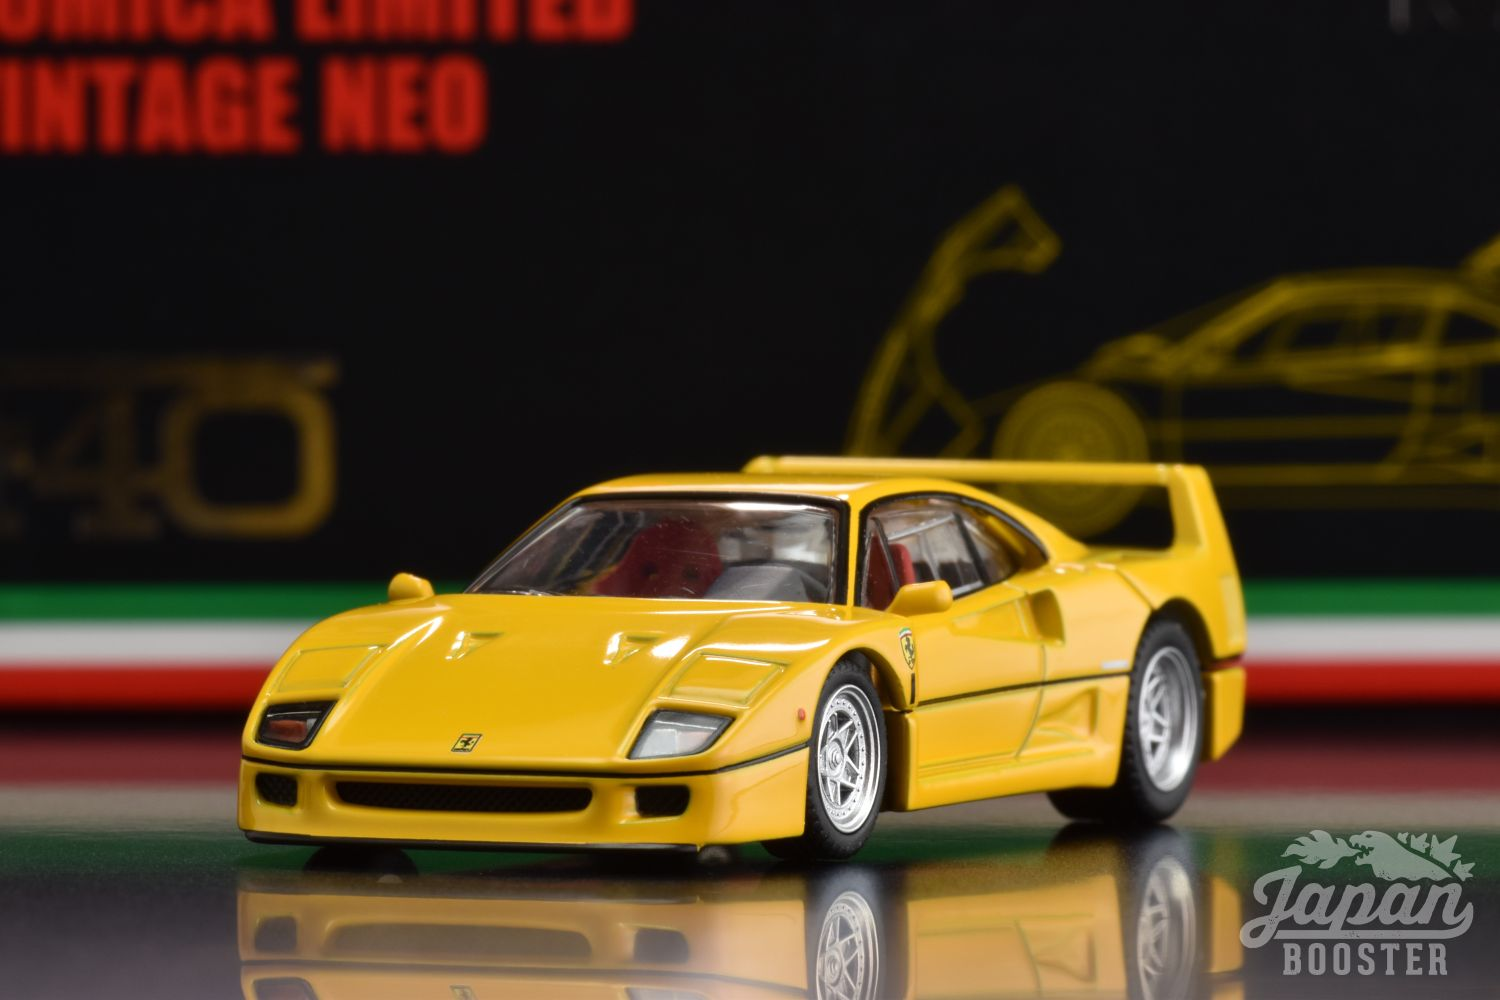 LV-F40 YELLOW